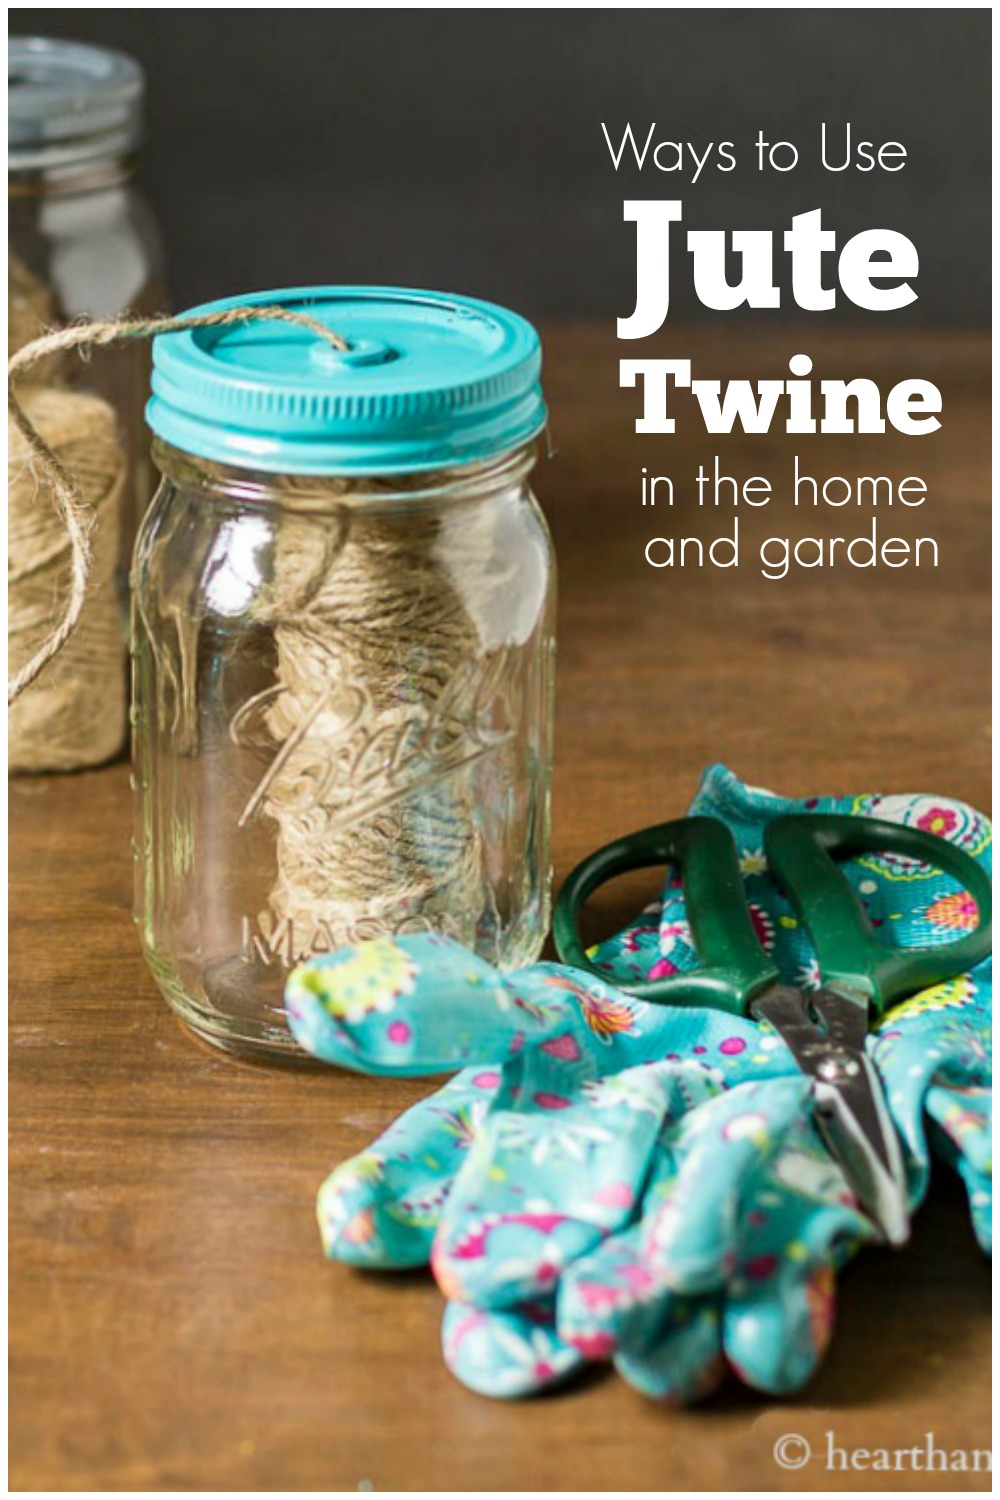 Just mason jar dispenser, garden gloves, scissors